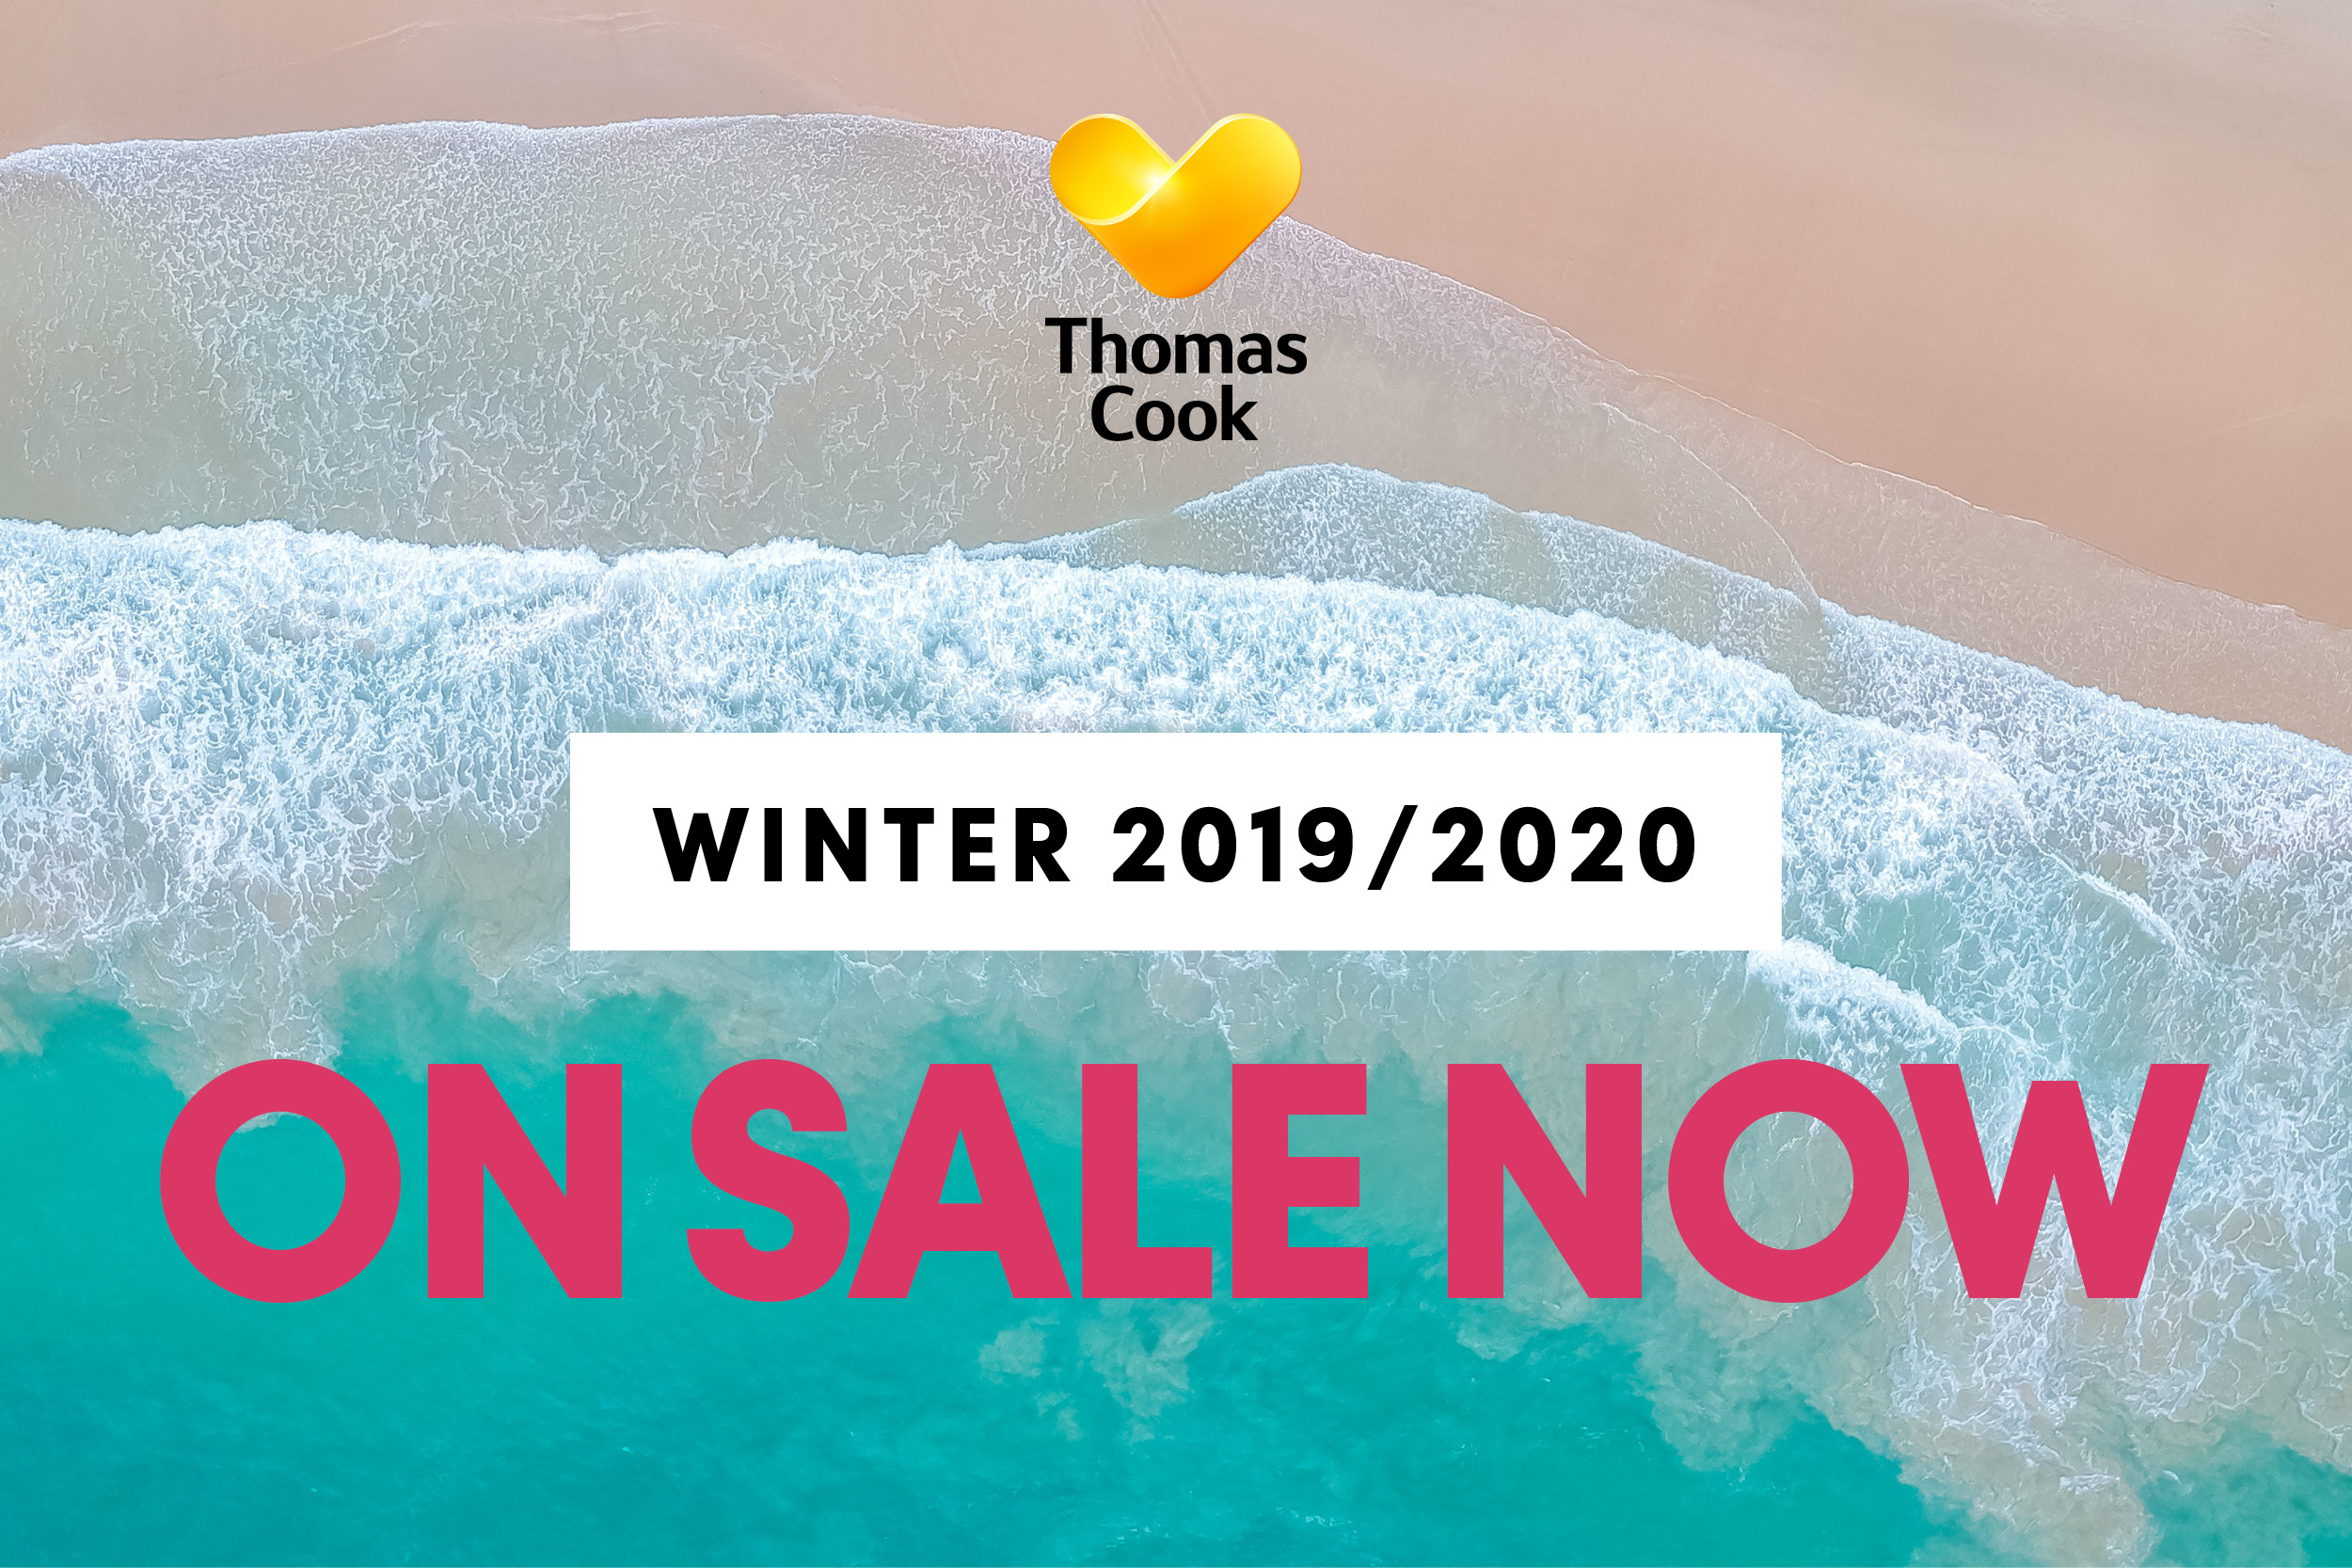 Thomas Cook Winter 2019 2020 On Sale